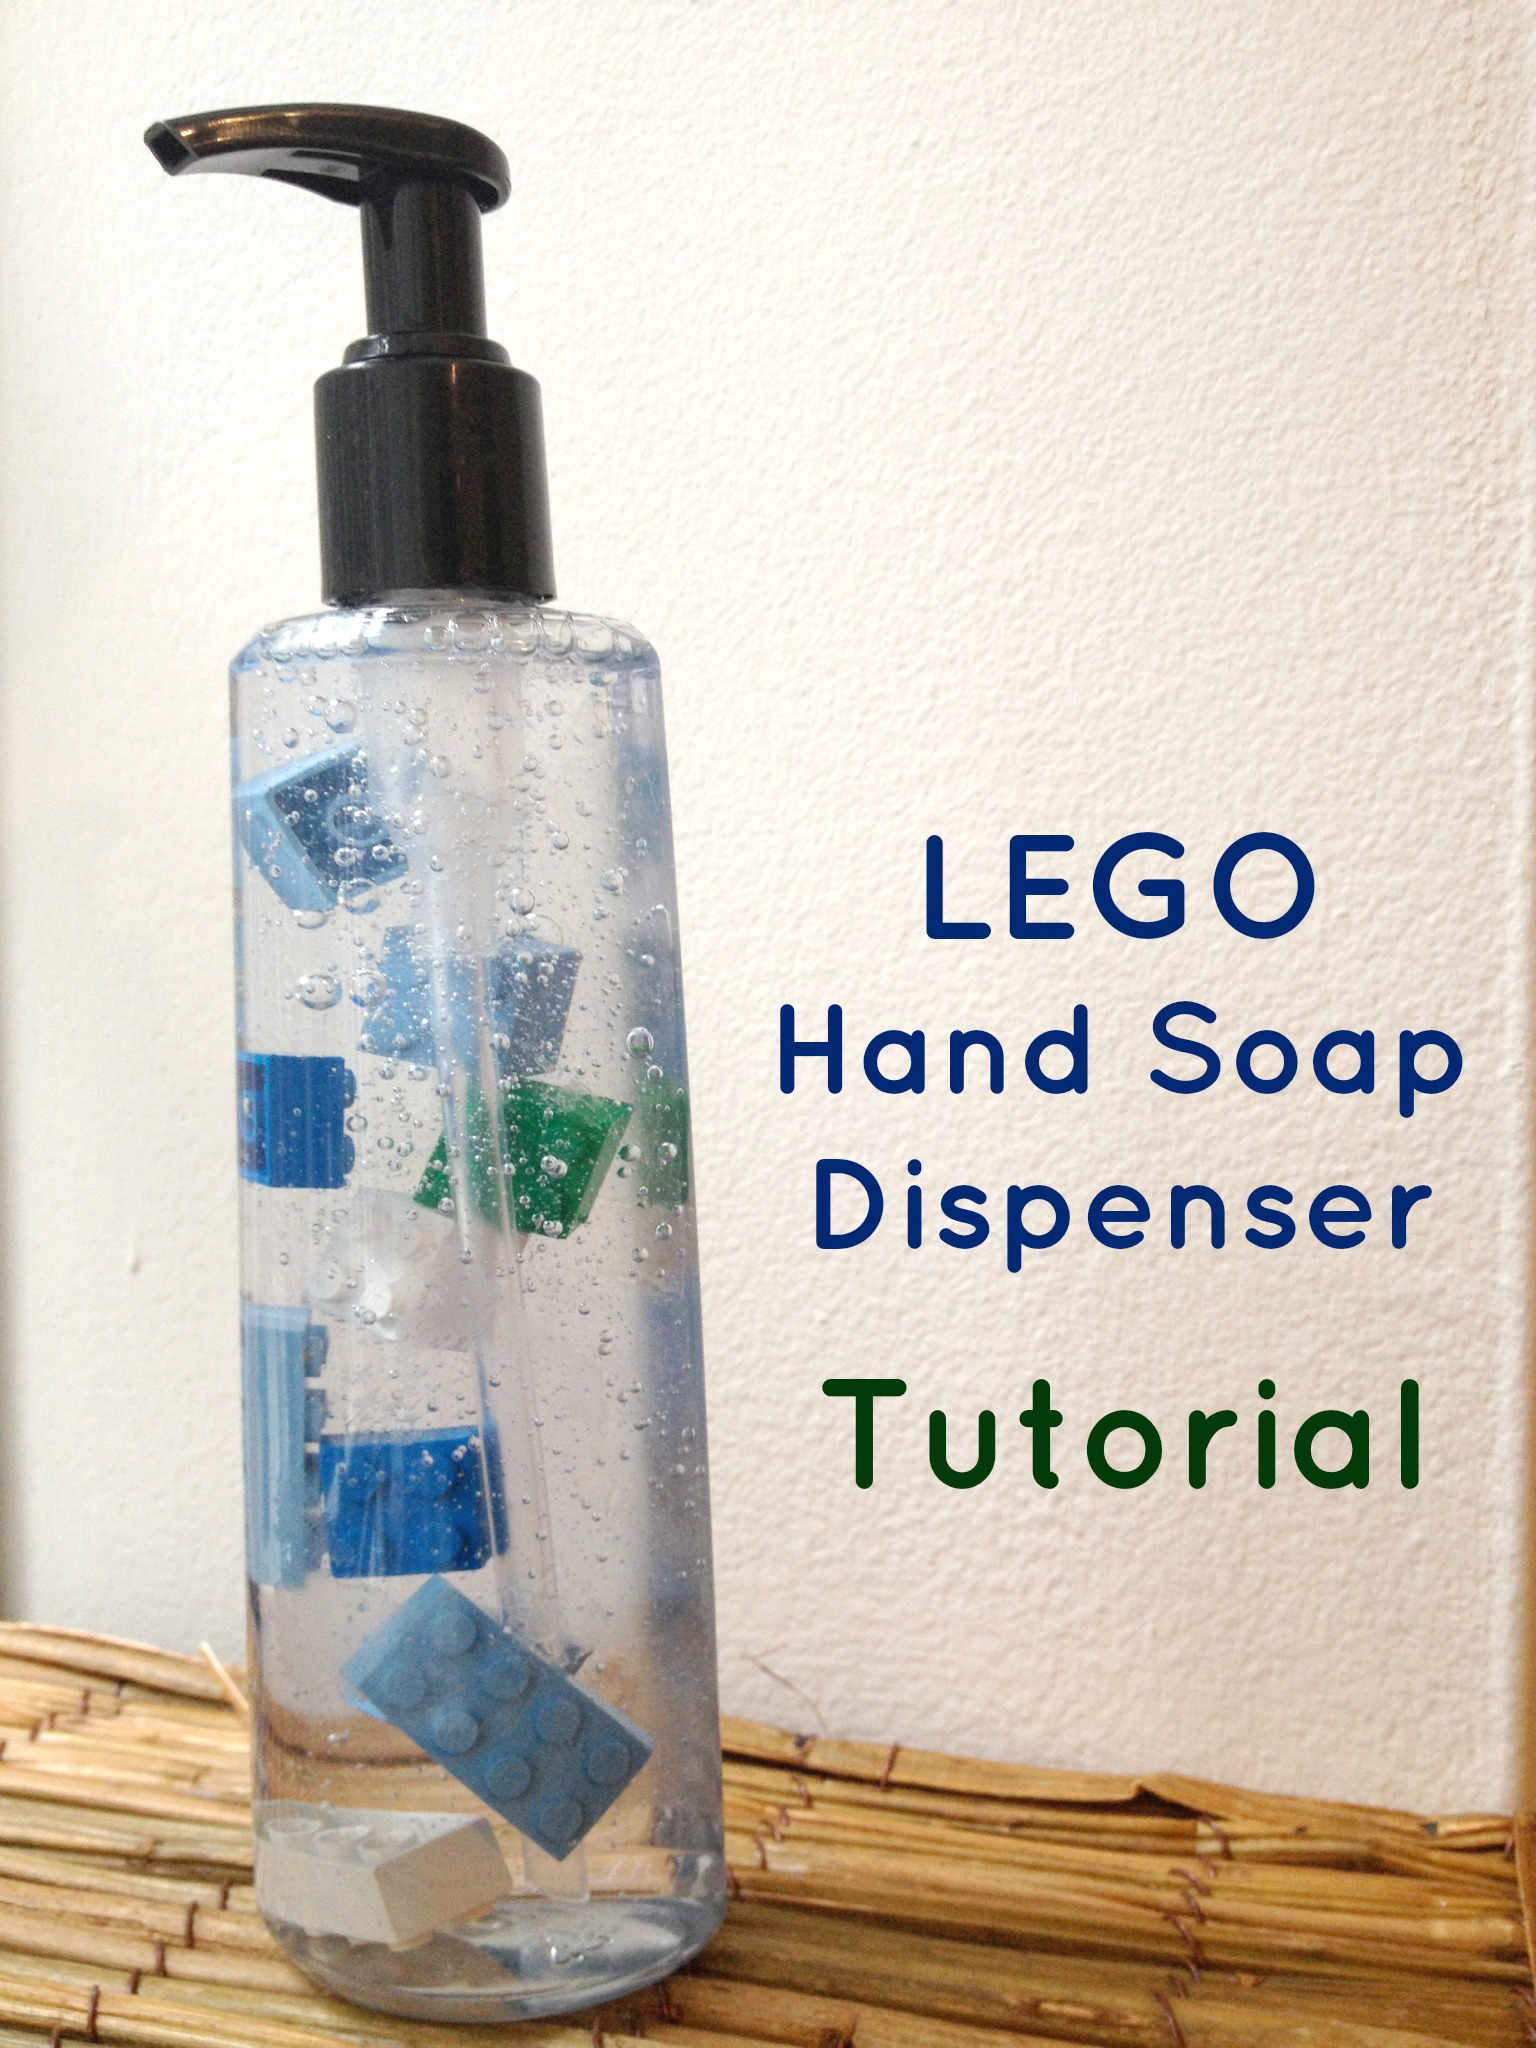 Lego Soap Dispenser Tutorial Veep Veep